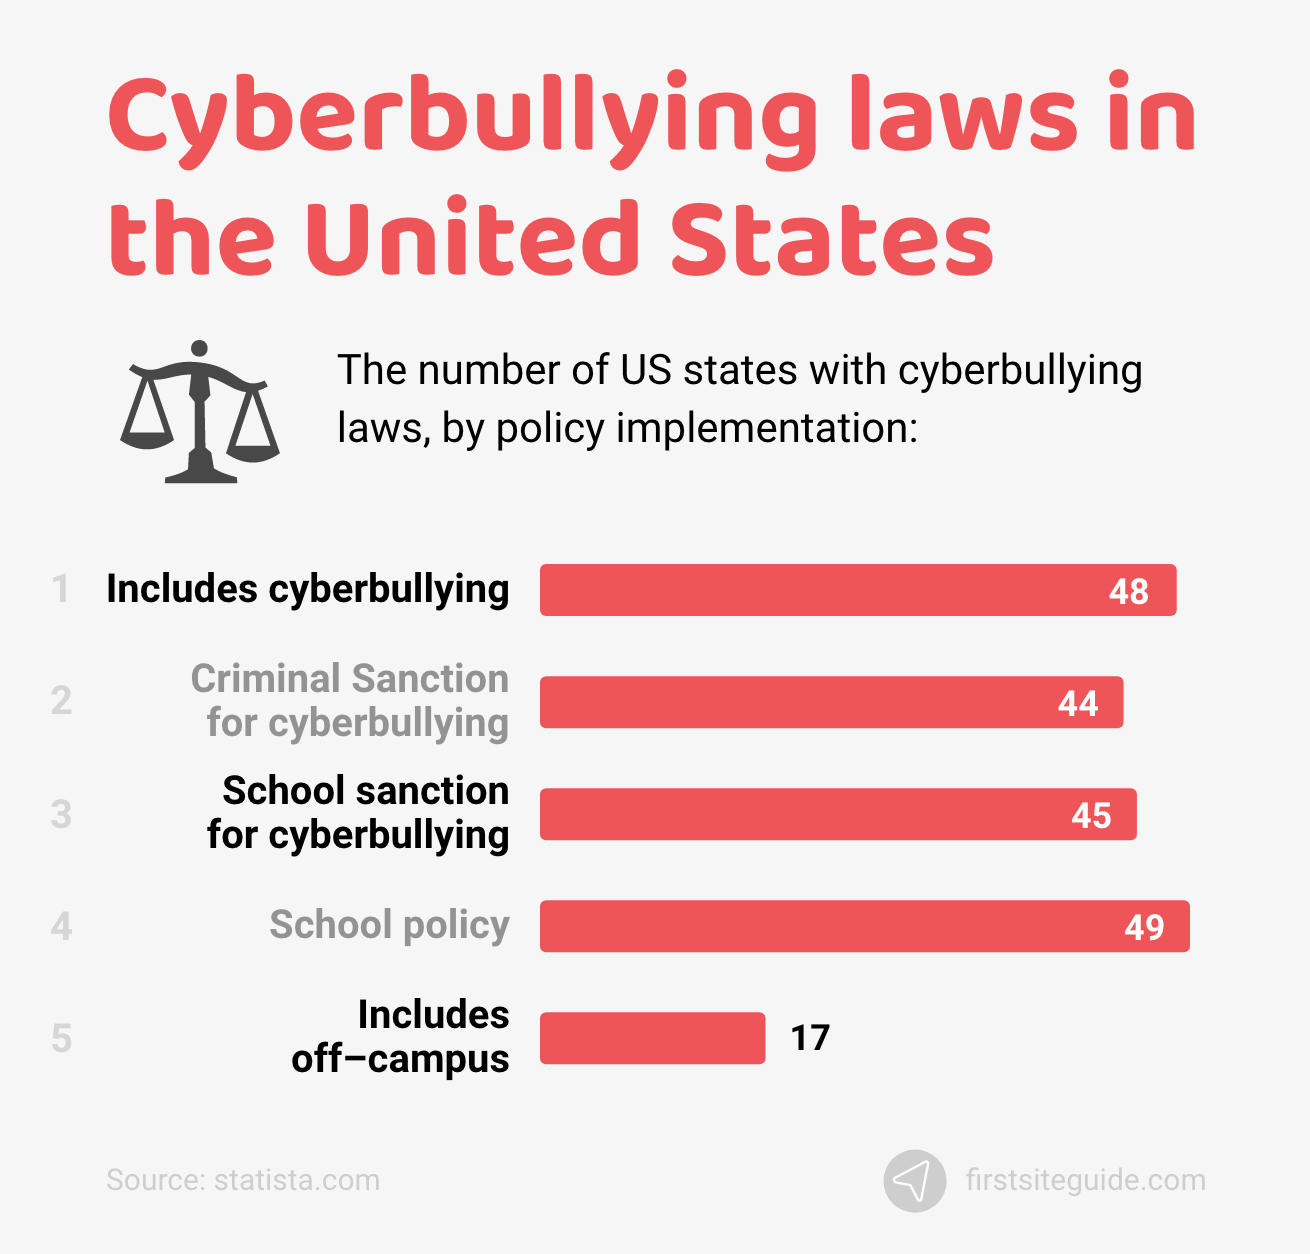 Cyberbullying laws in the United States